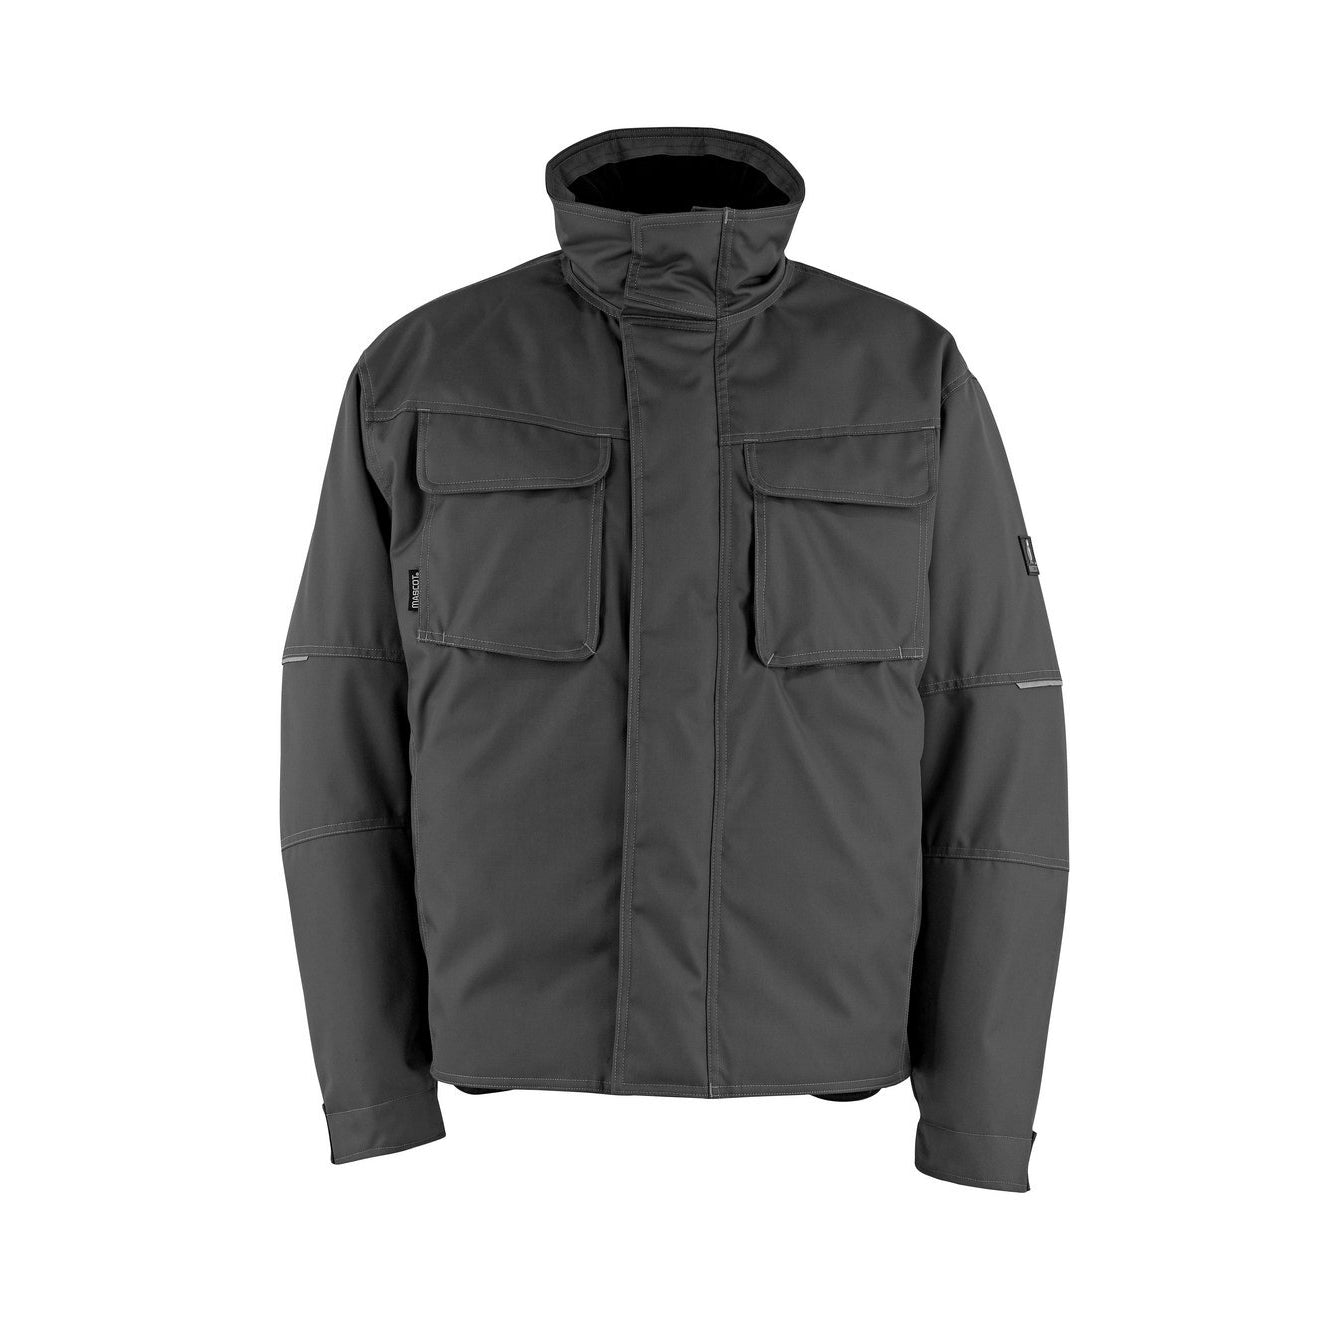 Mascot Columbus Industry Winter Jacket